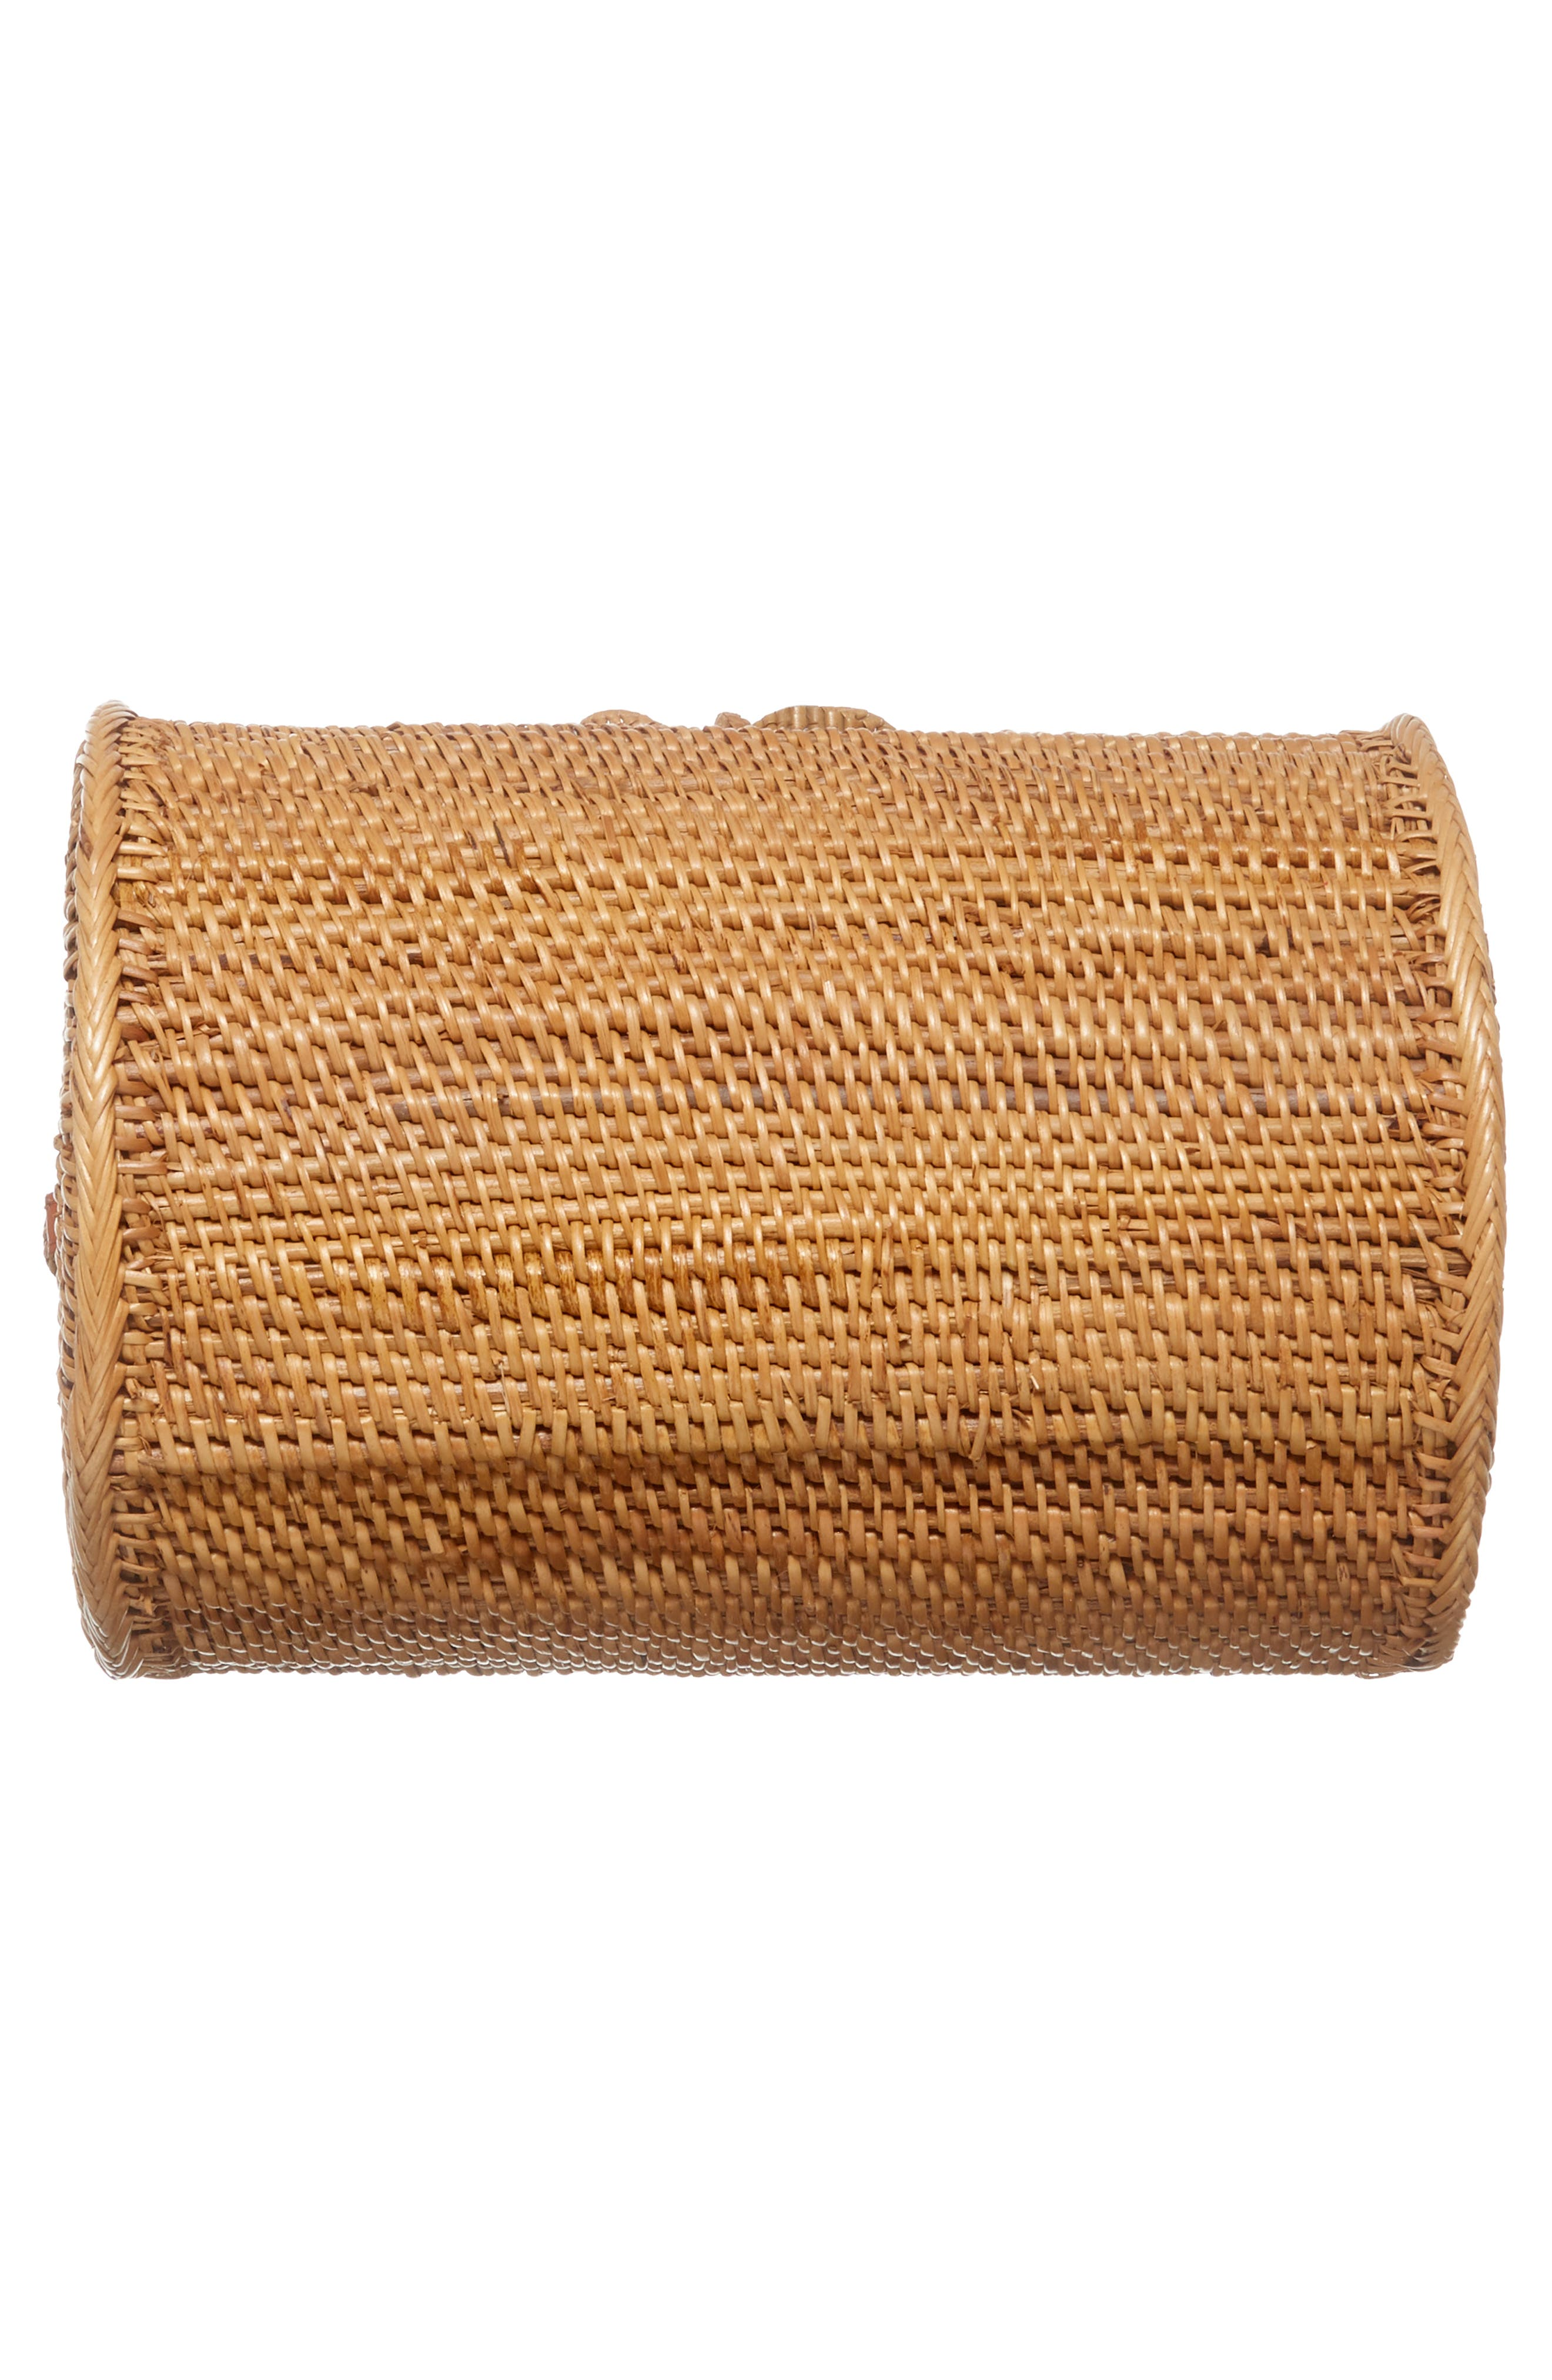 Cylinder Woven Crossbody Bag,                             Alternate thumbnail 6, color,                             230